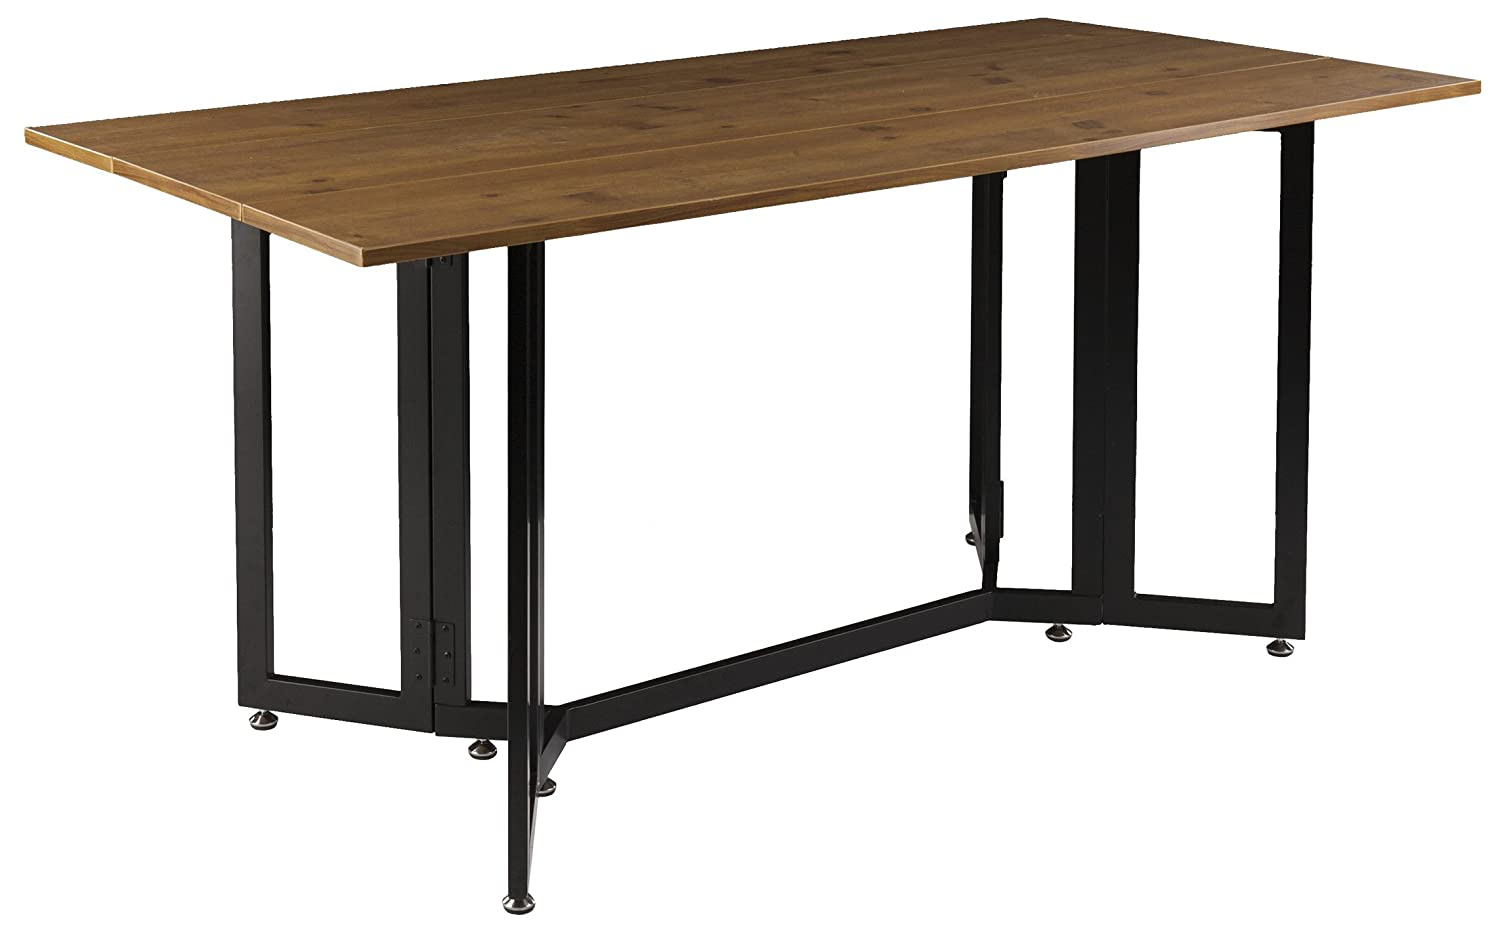 Holly & Martin Driness Drop Leaf Console Dining Table, Weathered Oak Finish with Black Metal Base